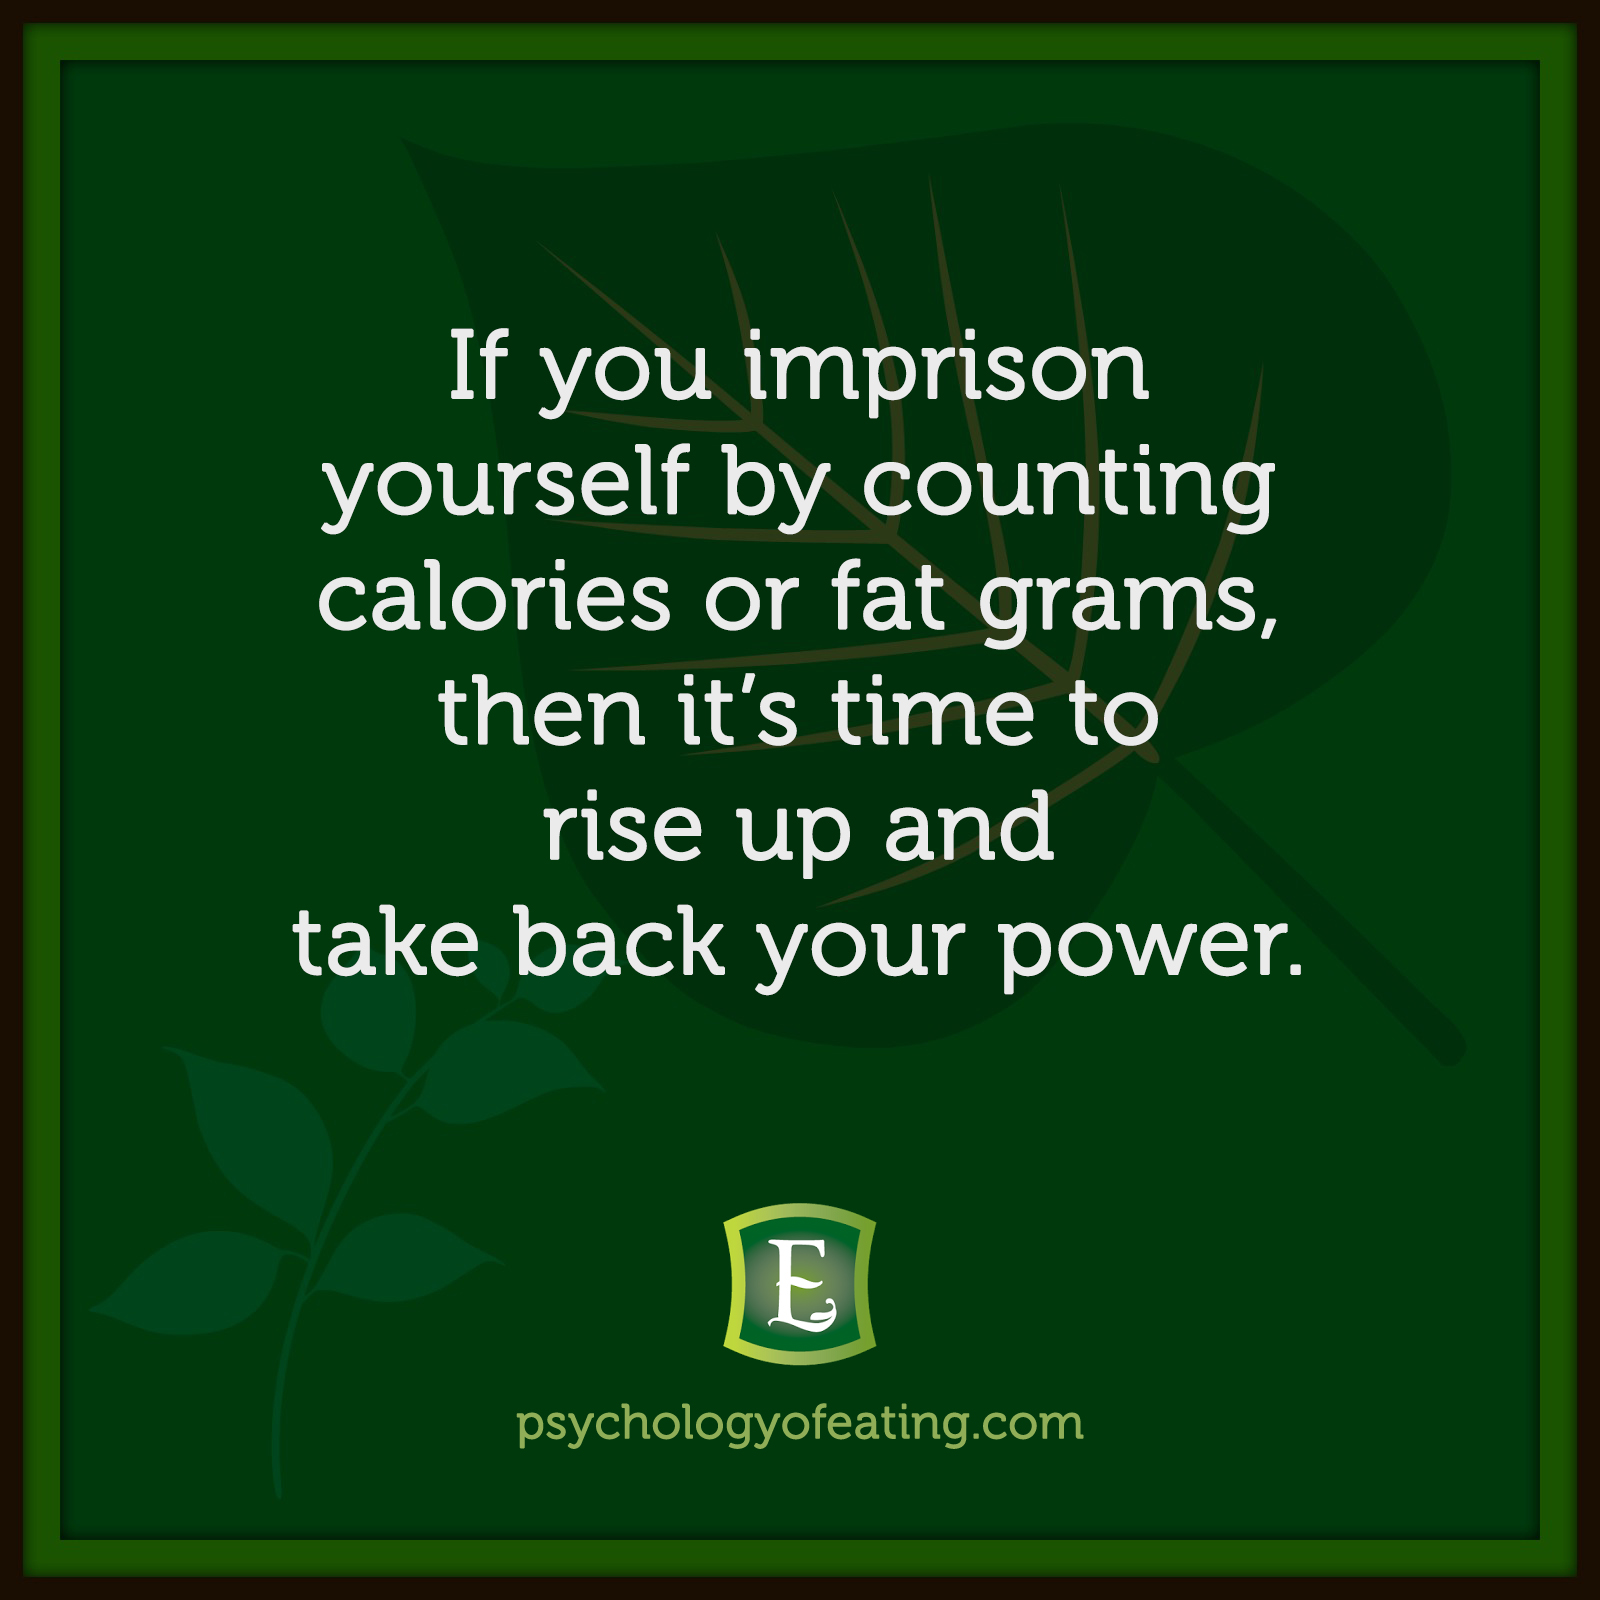 If you imprison yourself by counting calories or fat grams, then it's time to rise up and take back your power. #health #nutrition #eatingpsychology #IPE